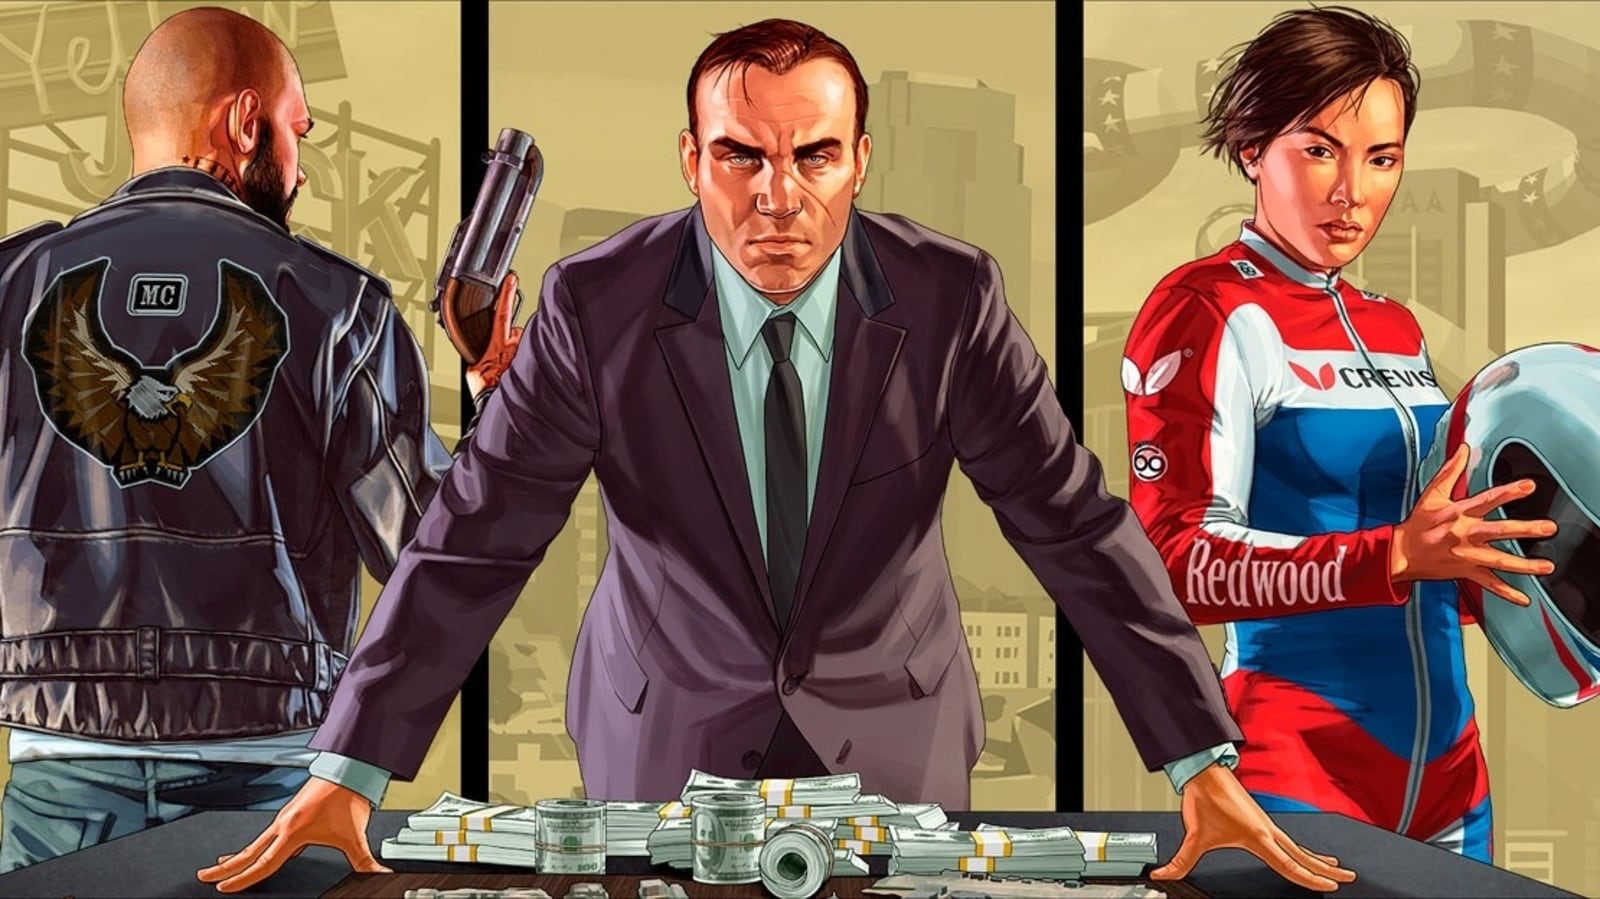 GTA 5 best alternative games for your Android phone in 2021